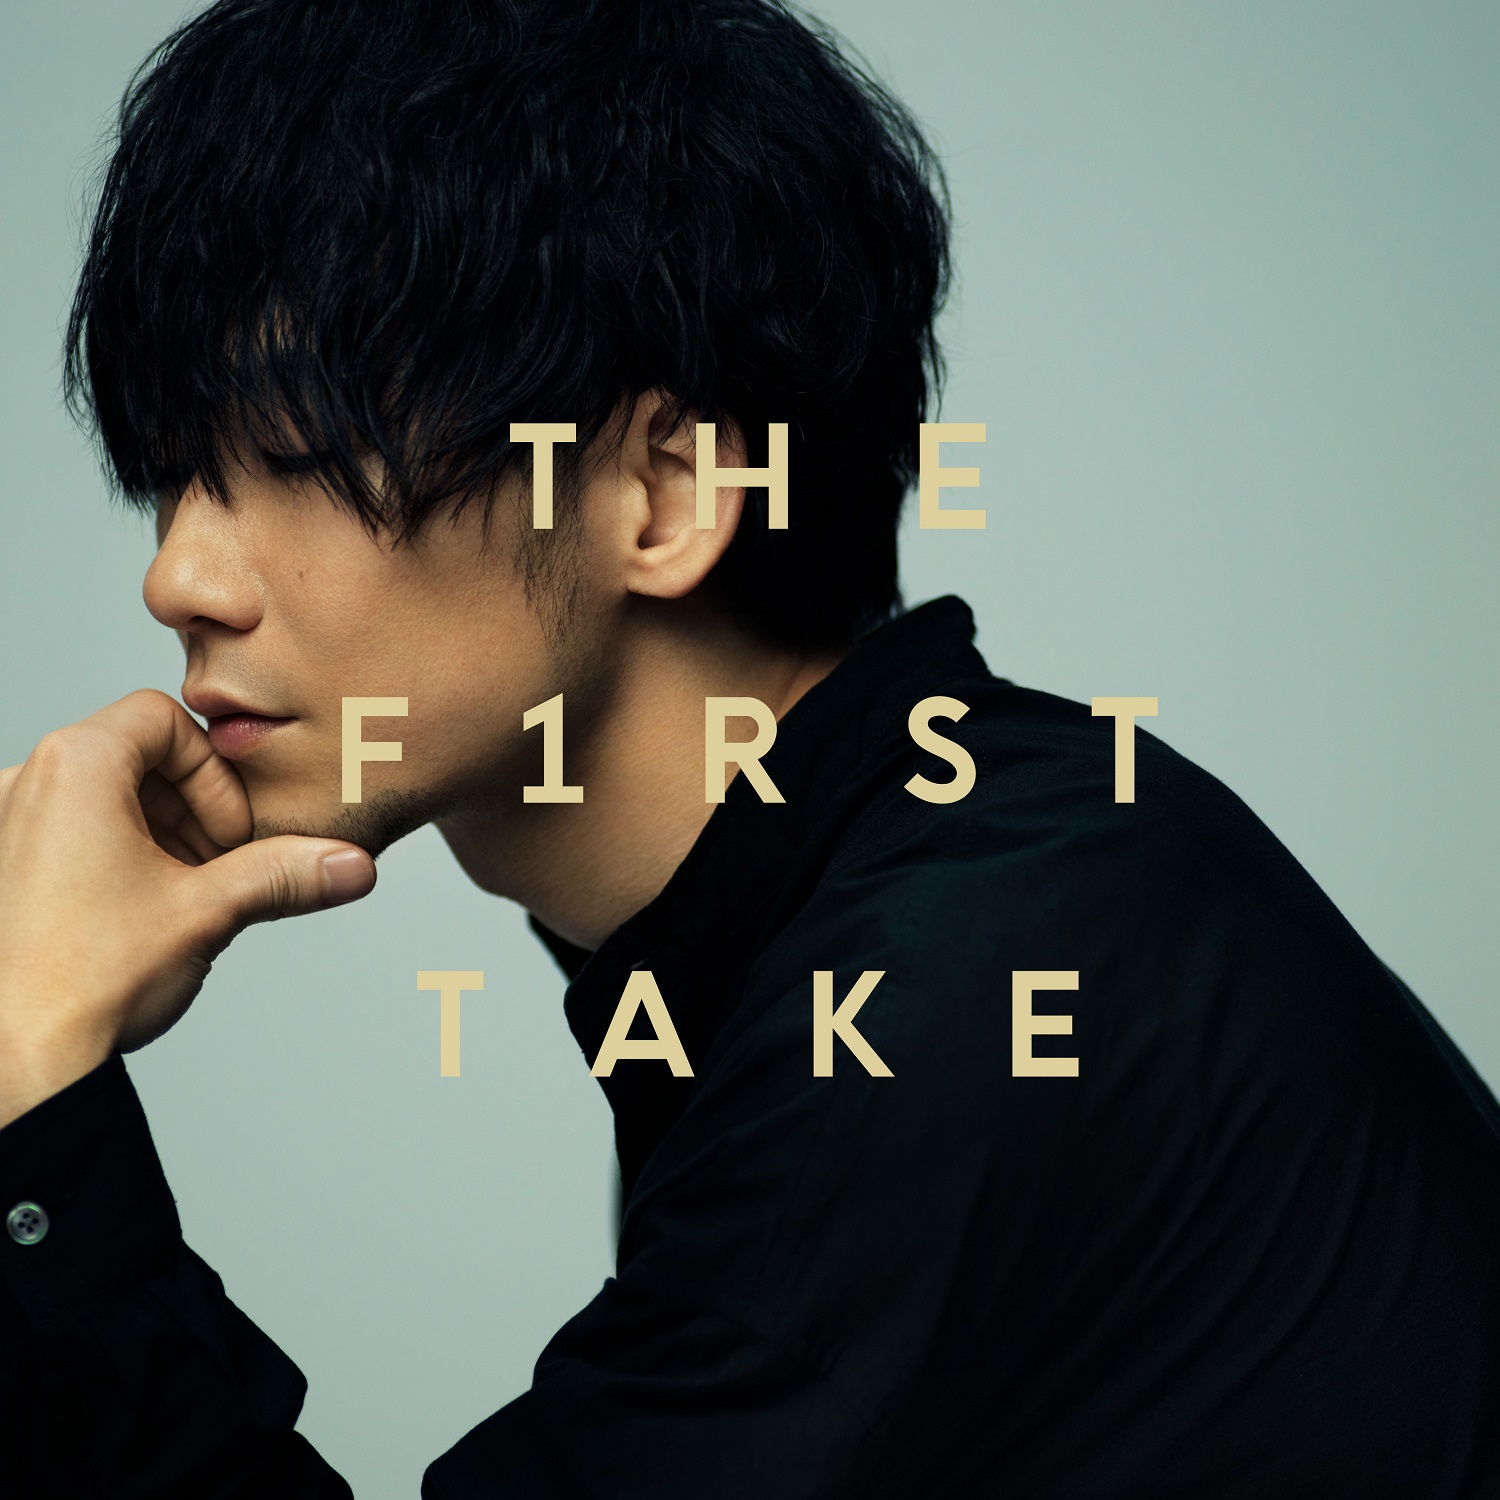 TK from 凛として時雨 unravel - From THE FIRST TAKE [2020.07.24+MP3+RAR]